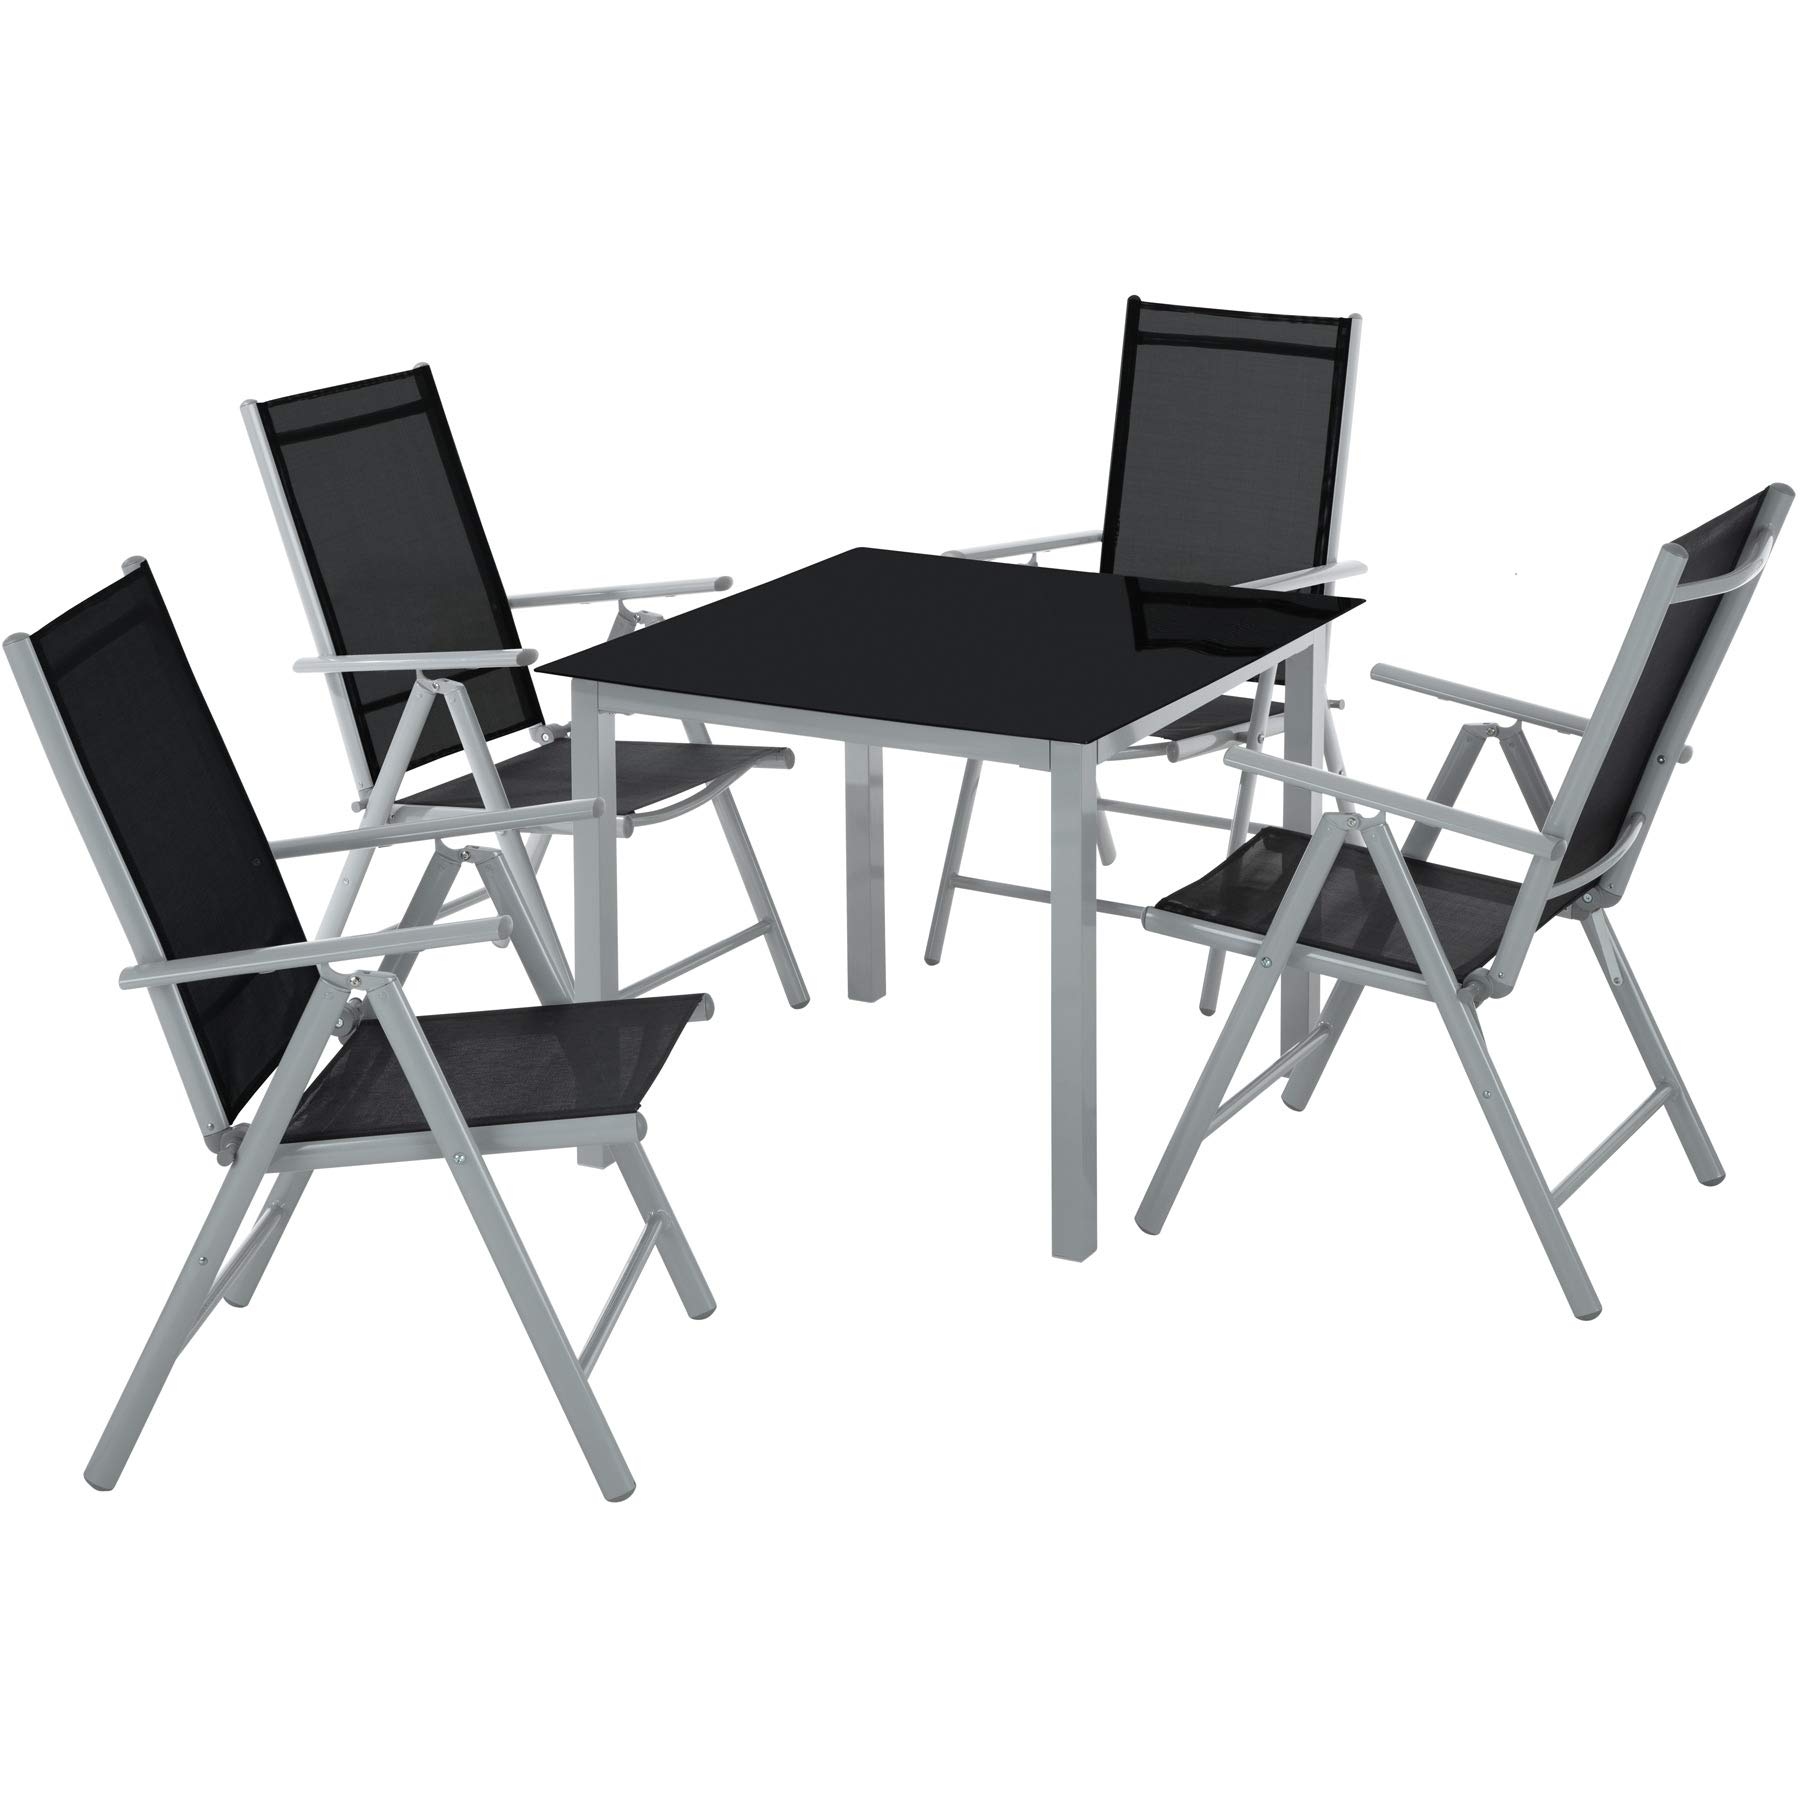 TecTake Aluminium garden furniture set 9+9 table and foldable chairs set  tabletop made of glass - different colours - (silver grey  no. 902969)